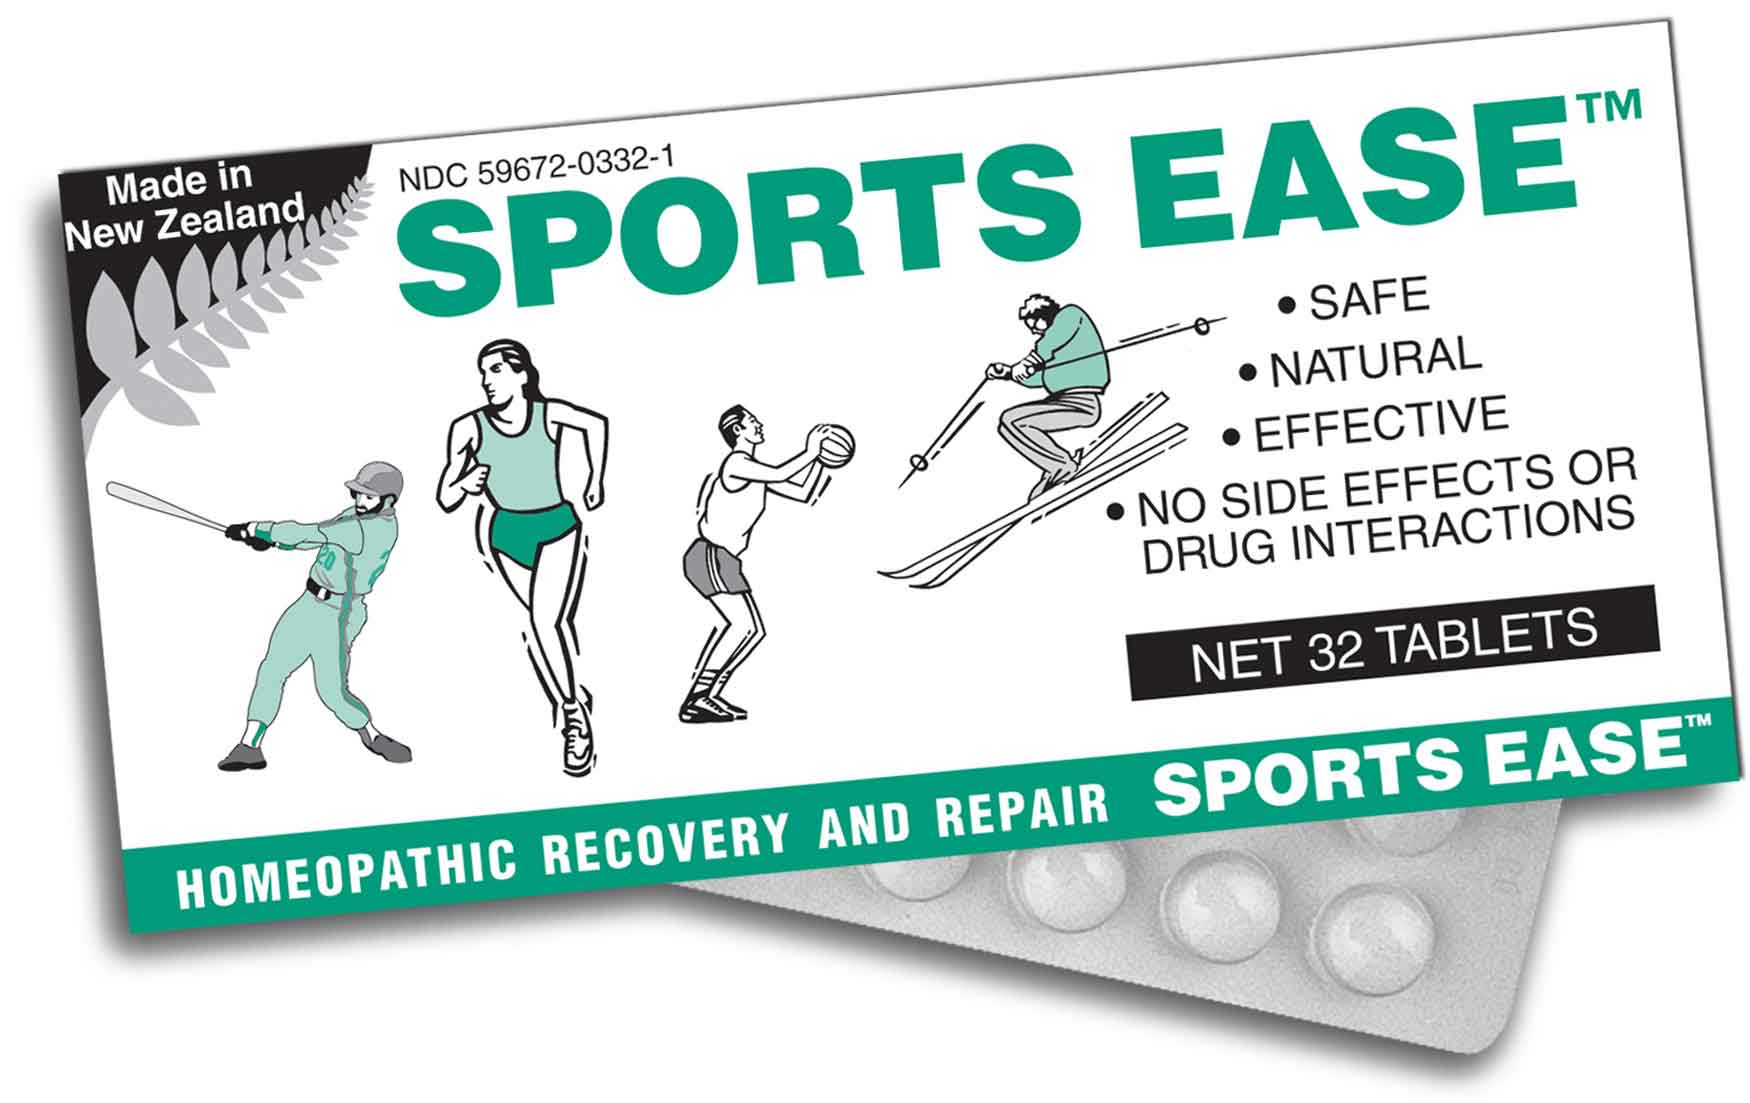 sports ease packet image